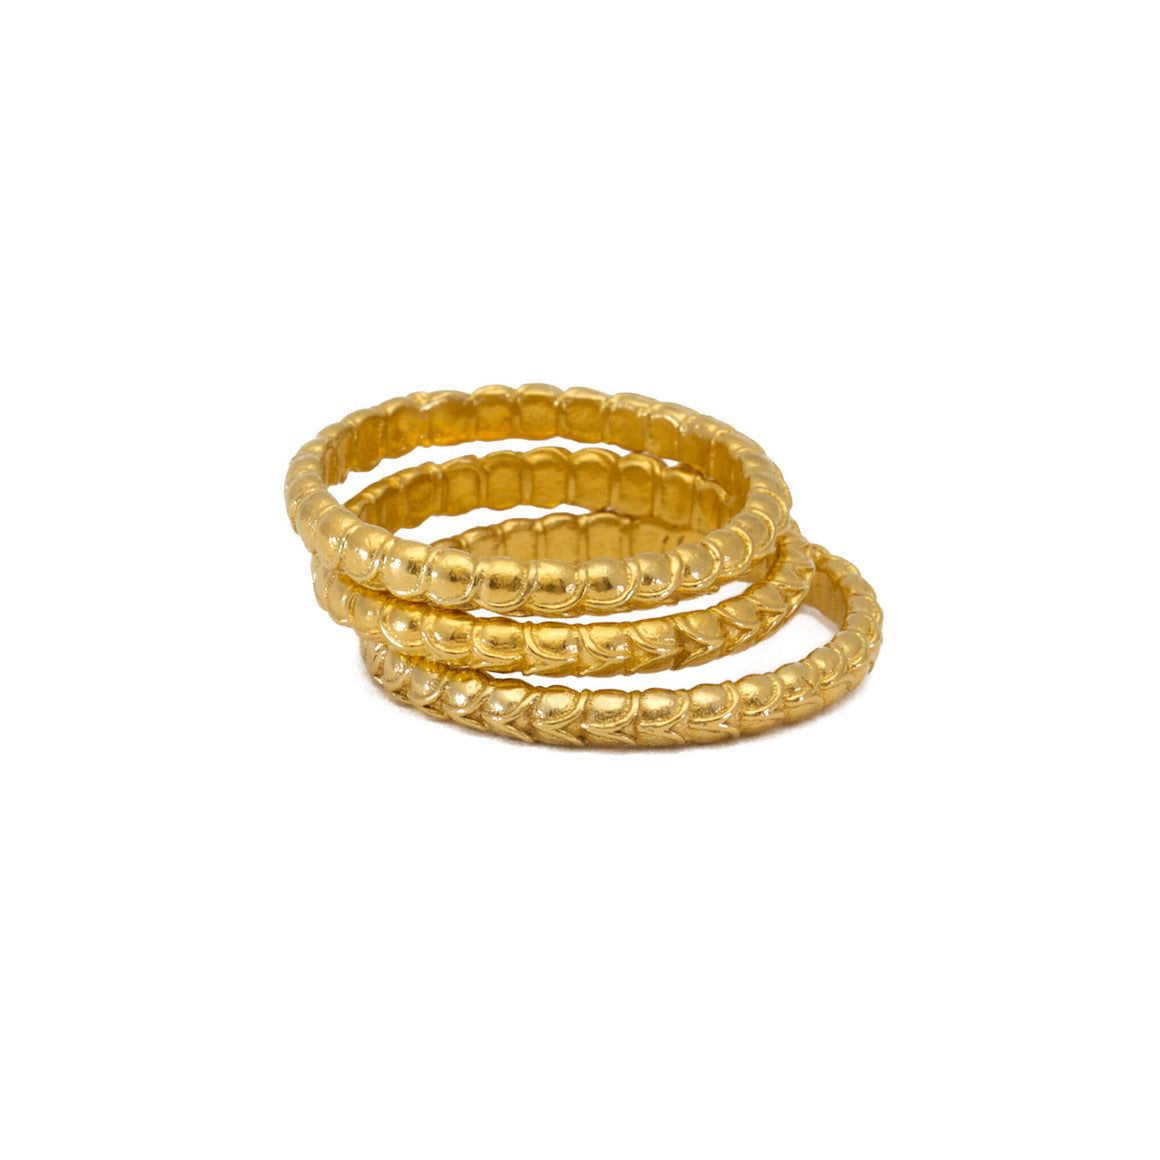 Arthropod 18ct Yellow Gold Ring